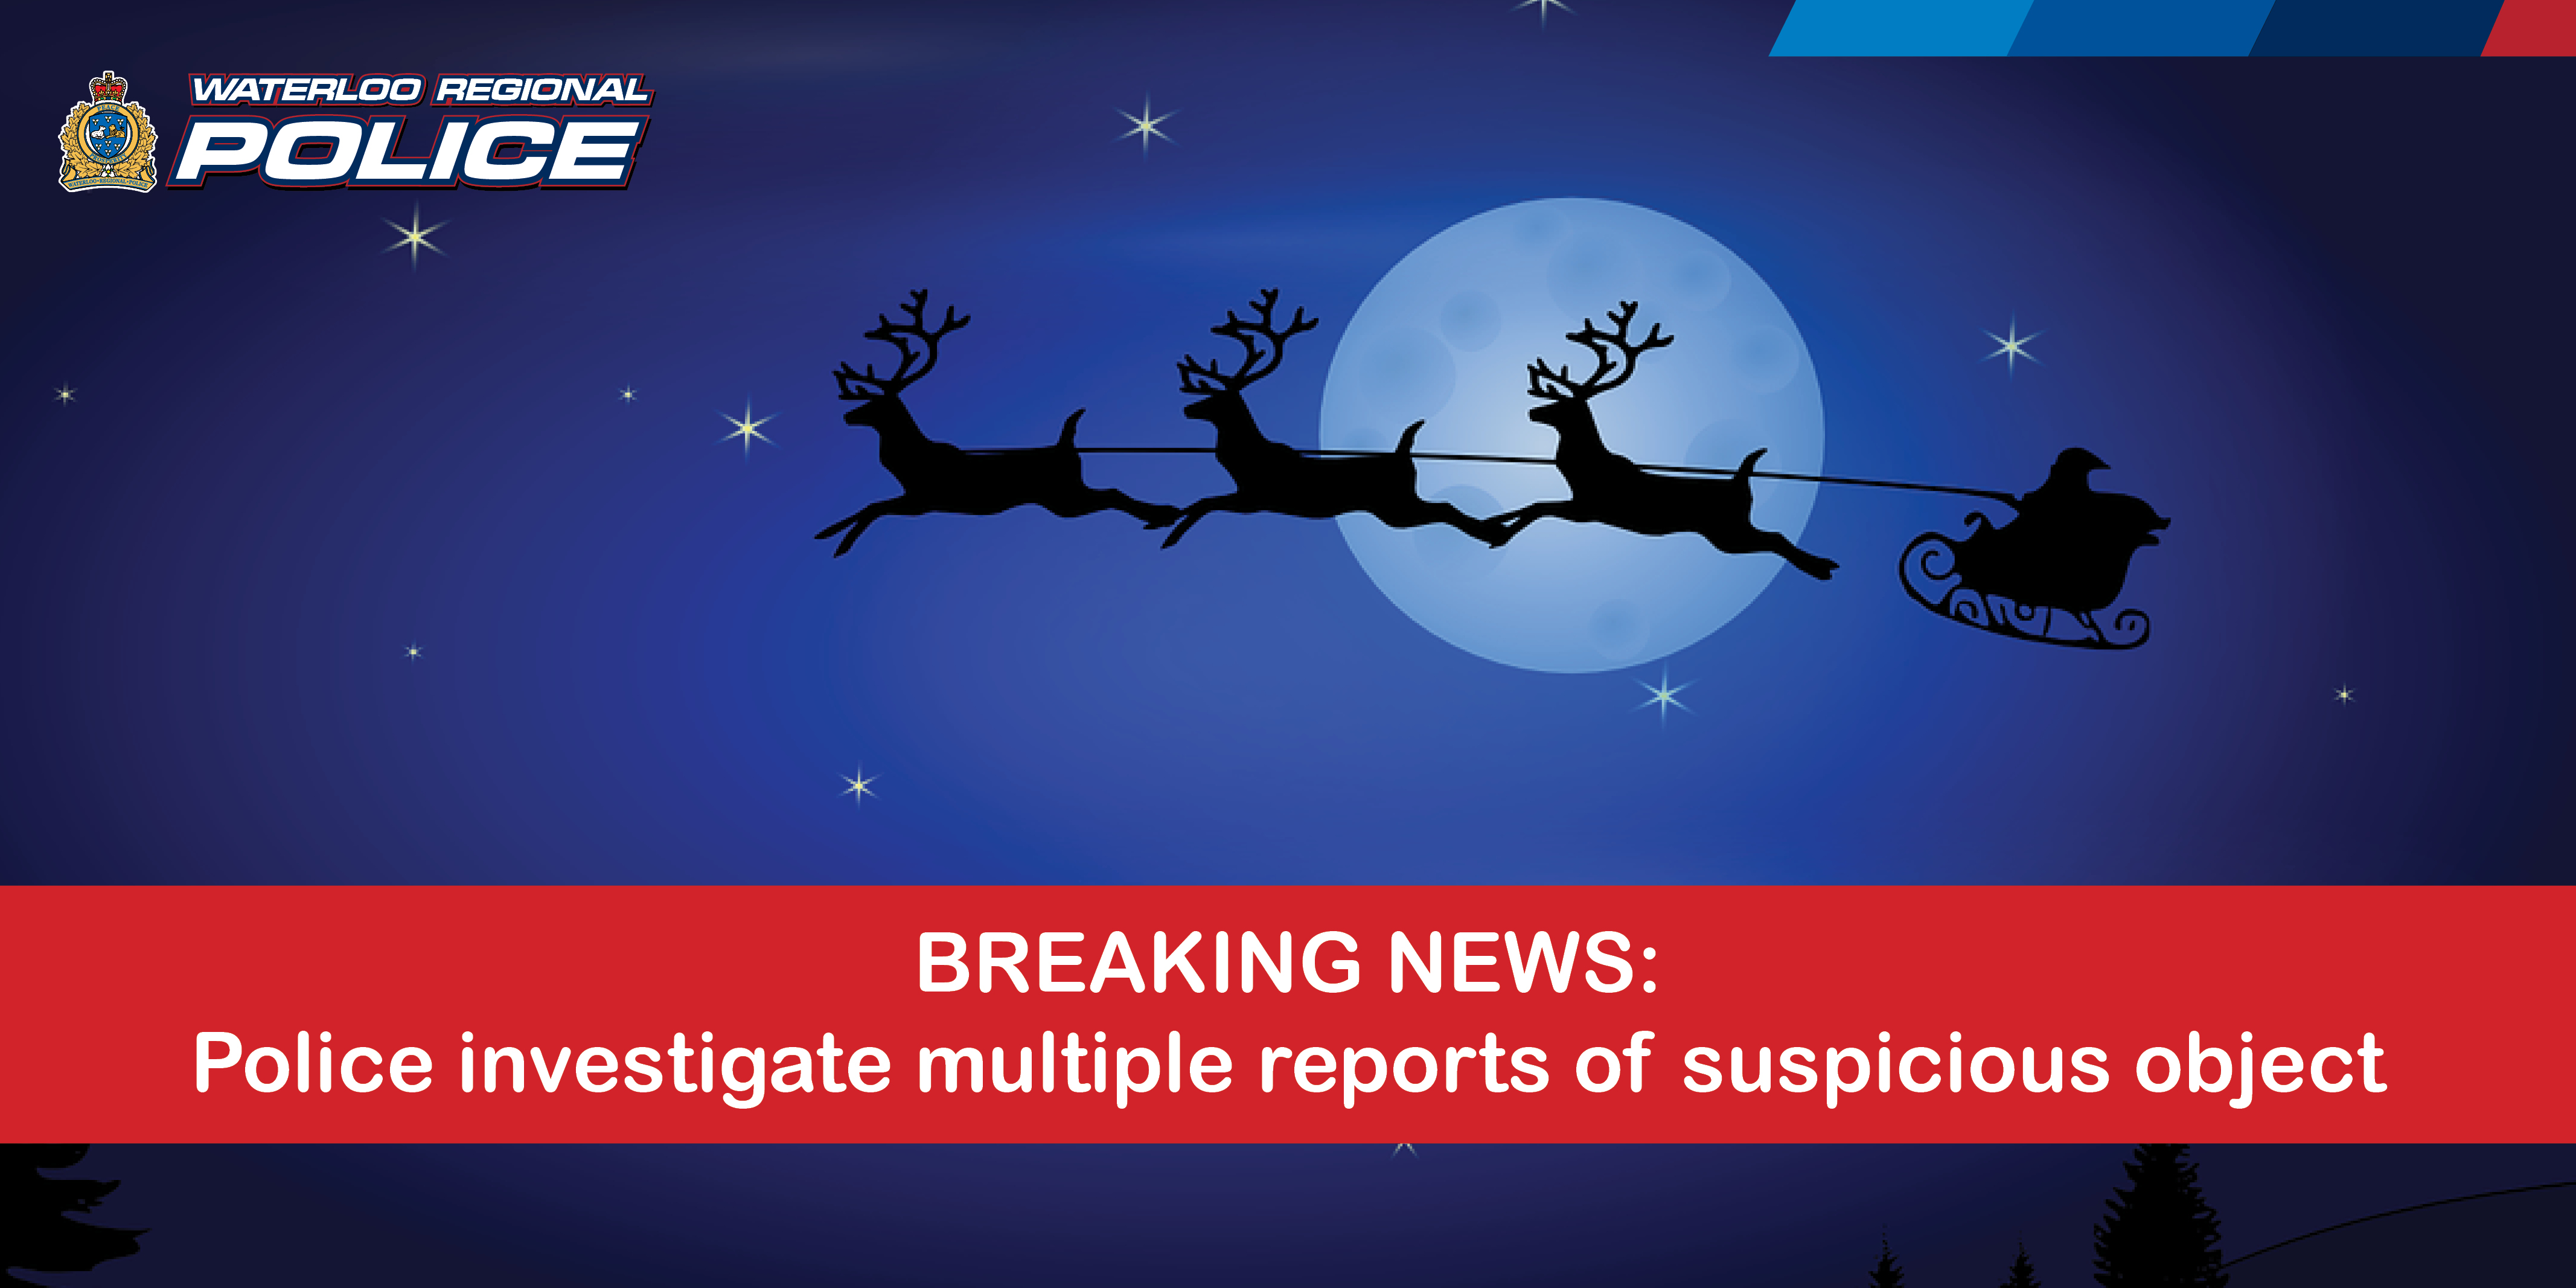 Breaking News: Police investigate multiple reports of suspicious person